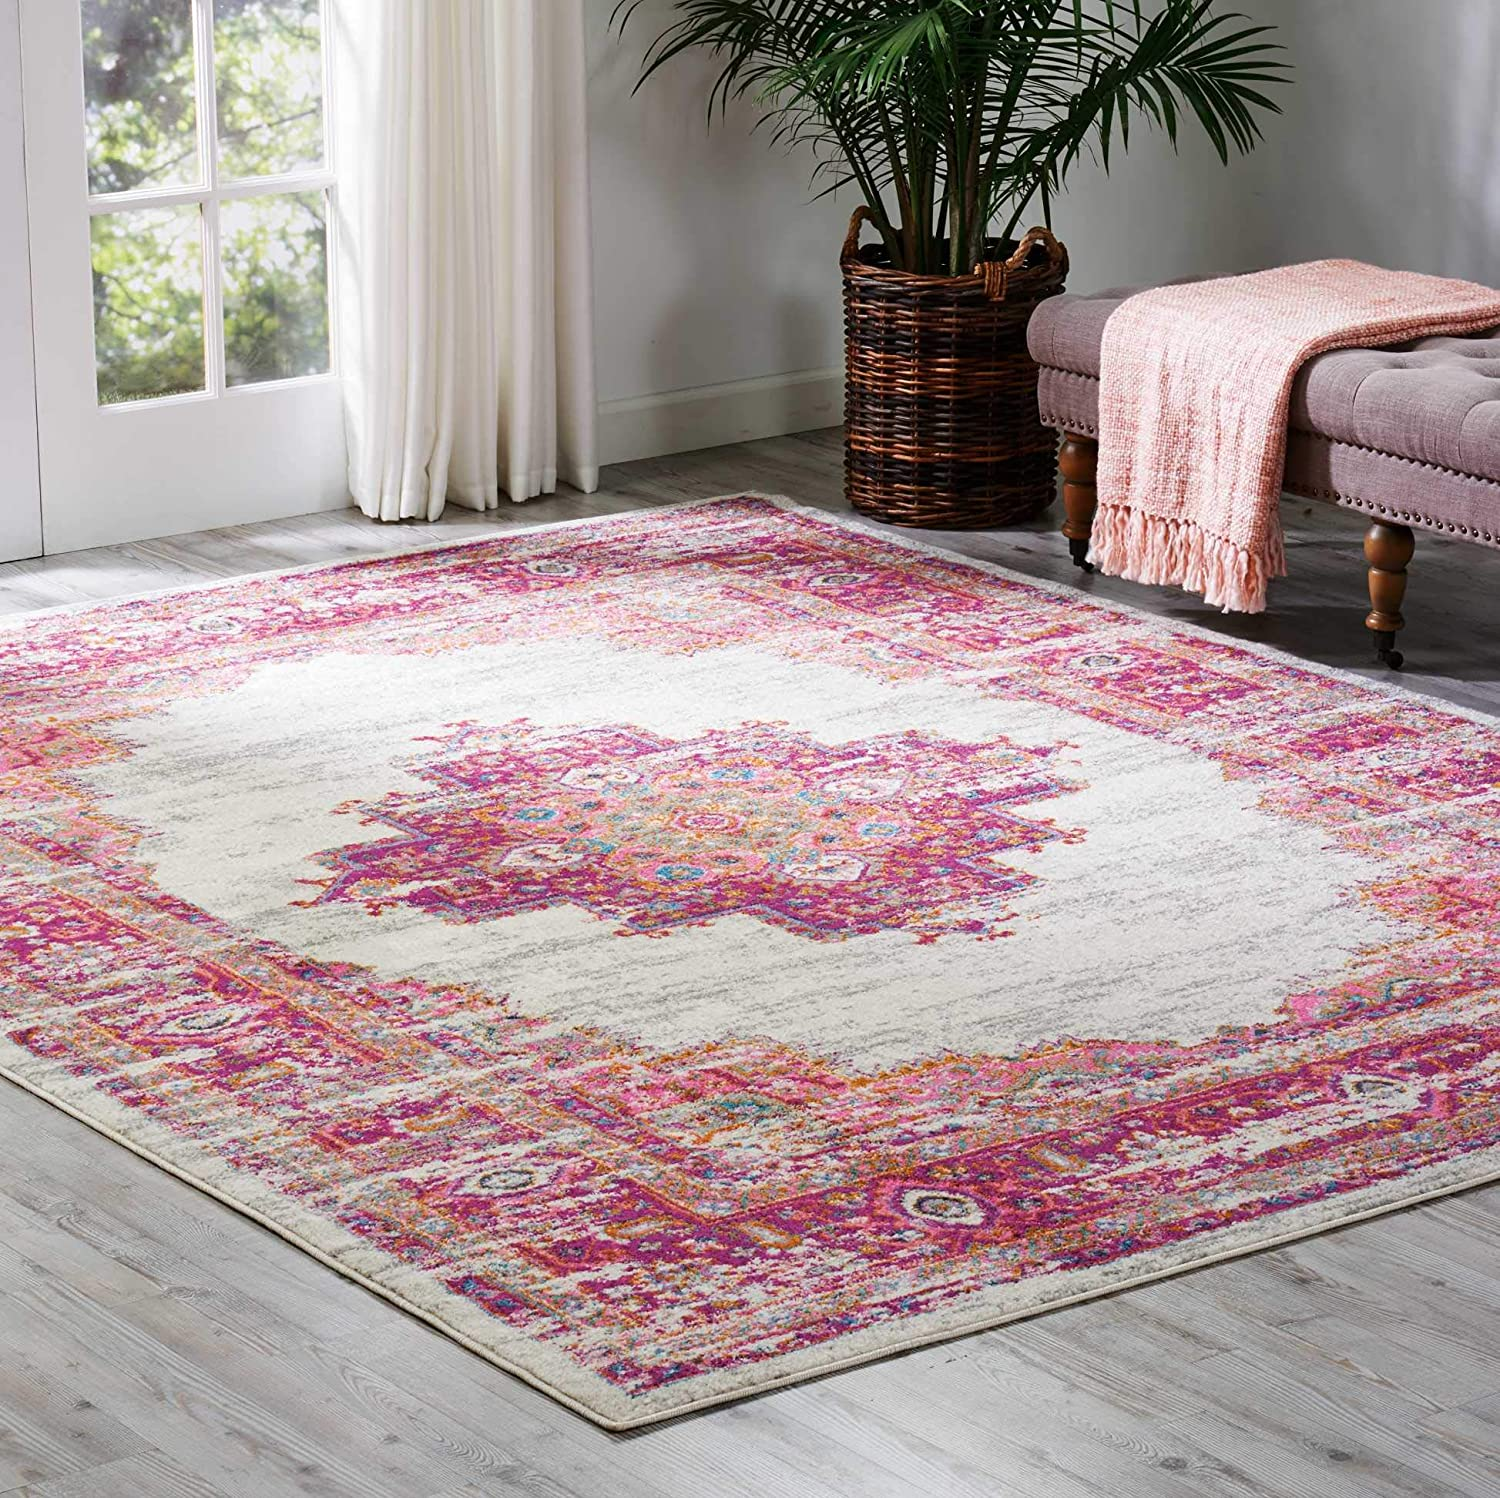 Nourison PSN03 Passion Traditional Bright Colorful Area Rug, 8' x 10', Ivory/Fushia